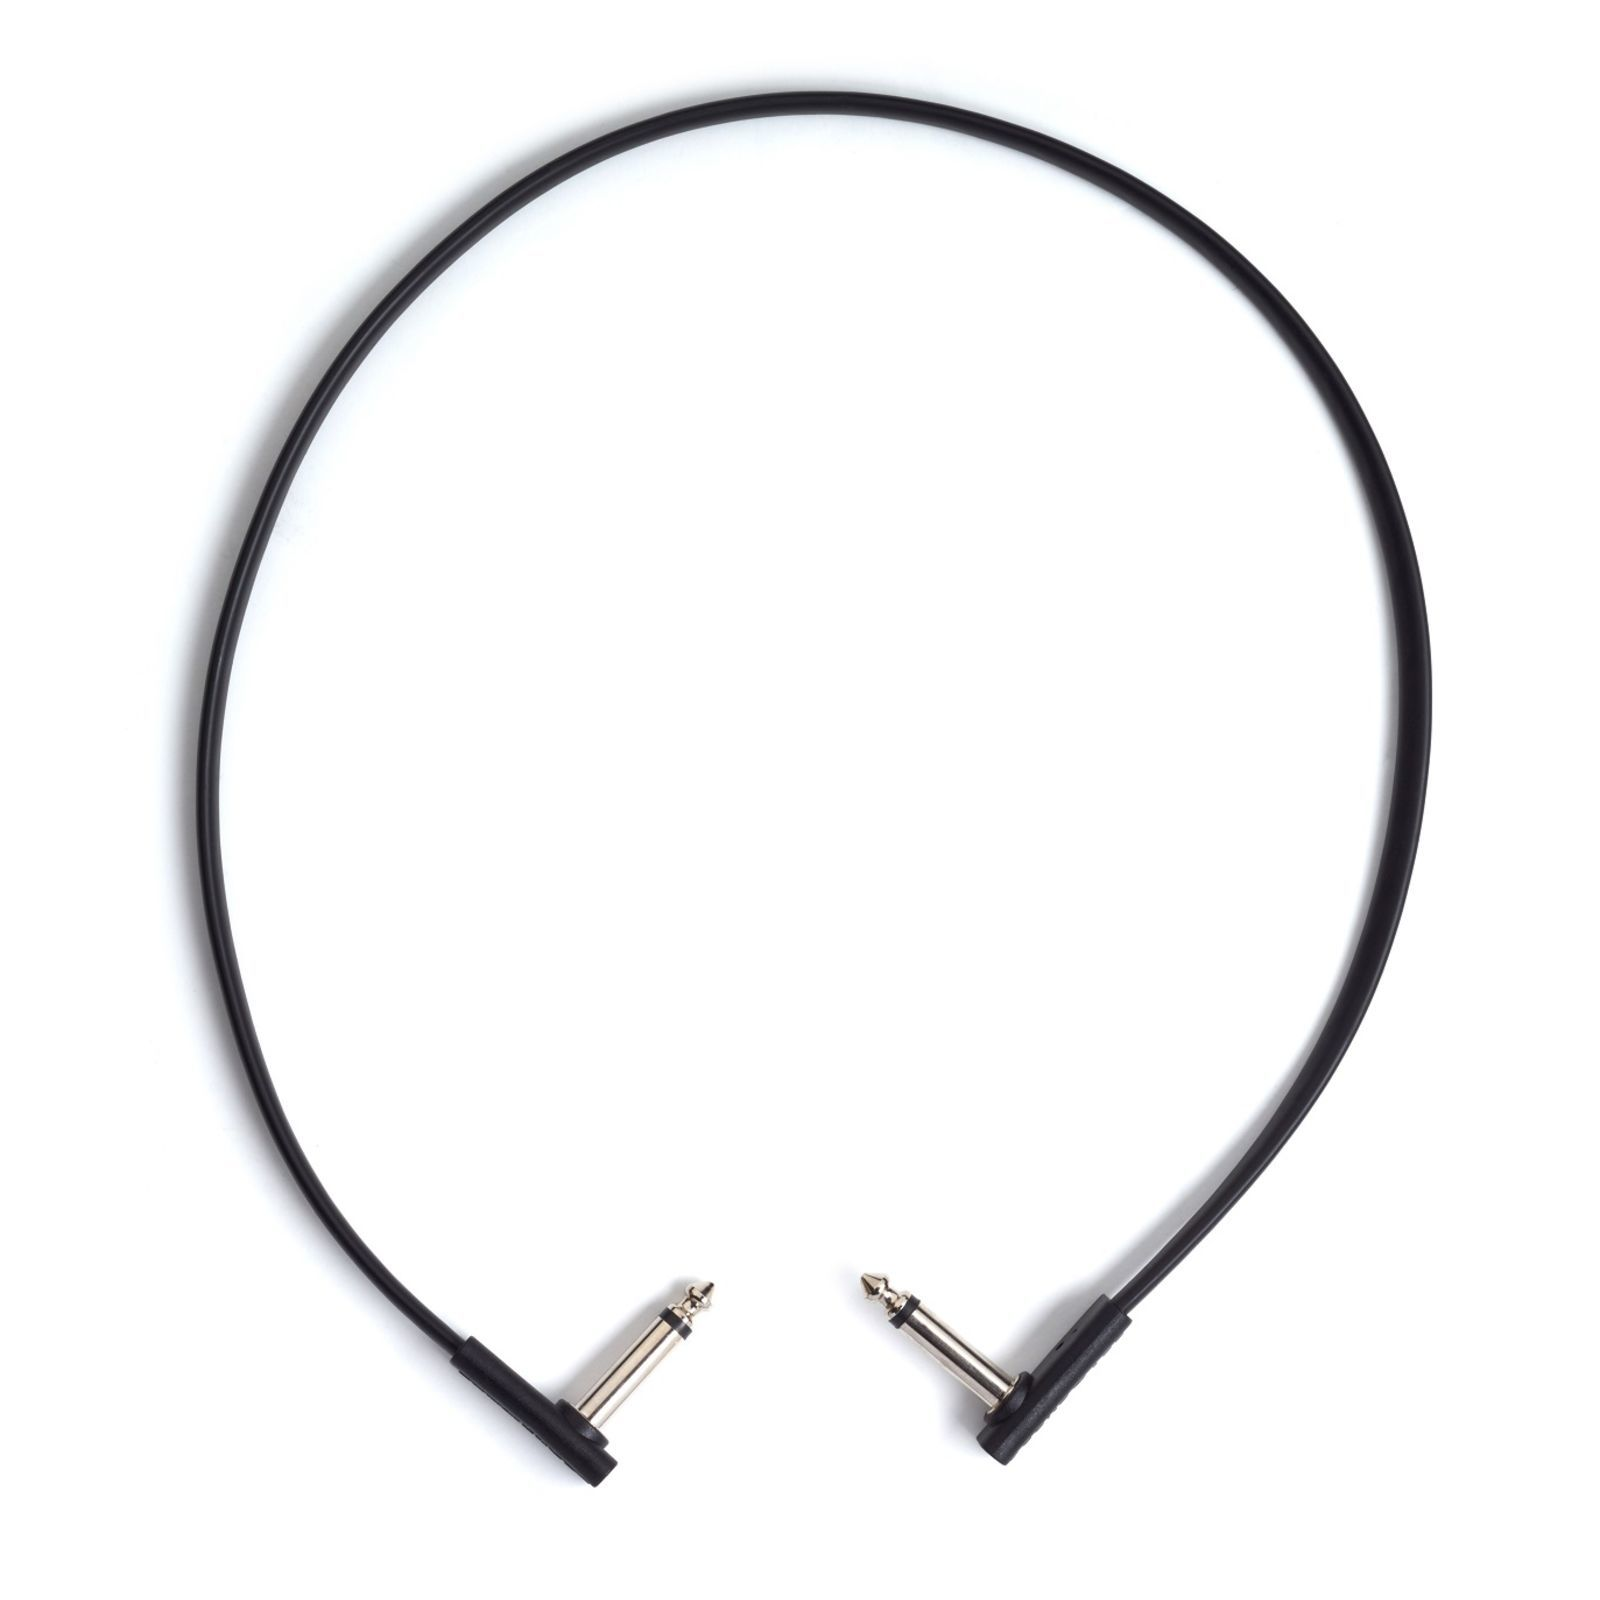 Rockboard Flat Patch Cable 60 cm Black Product Image